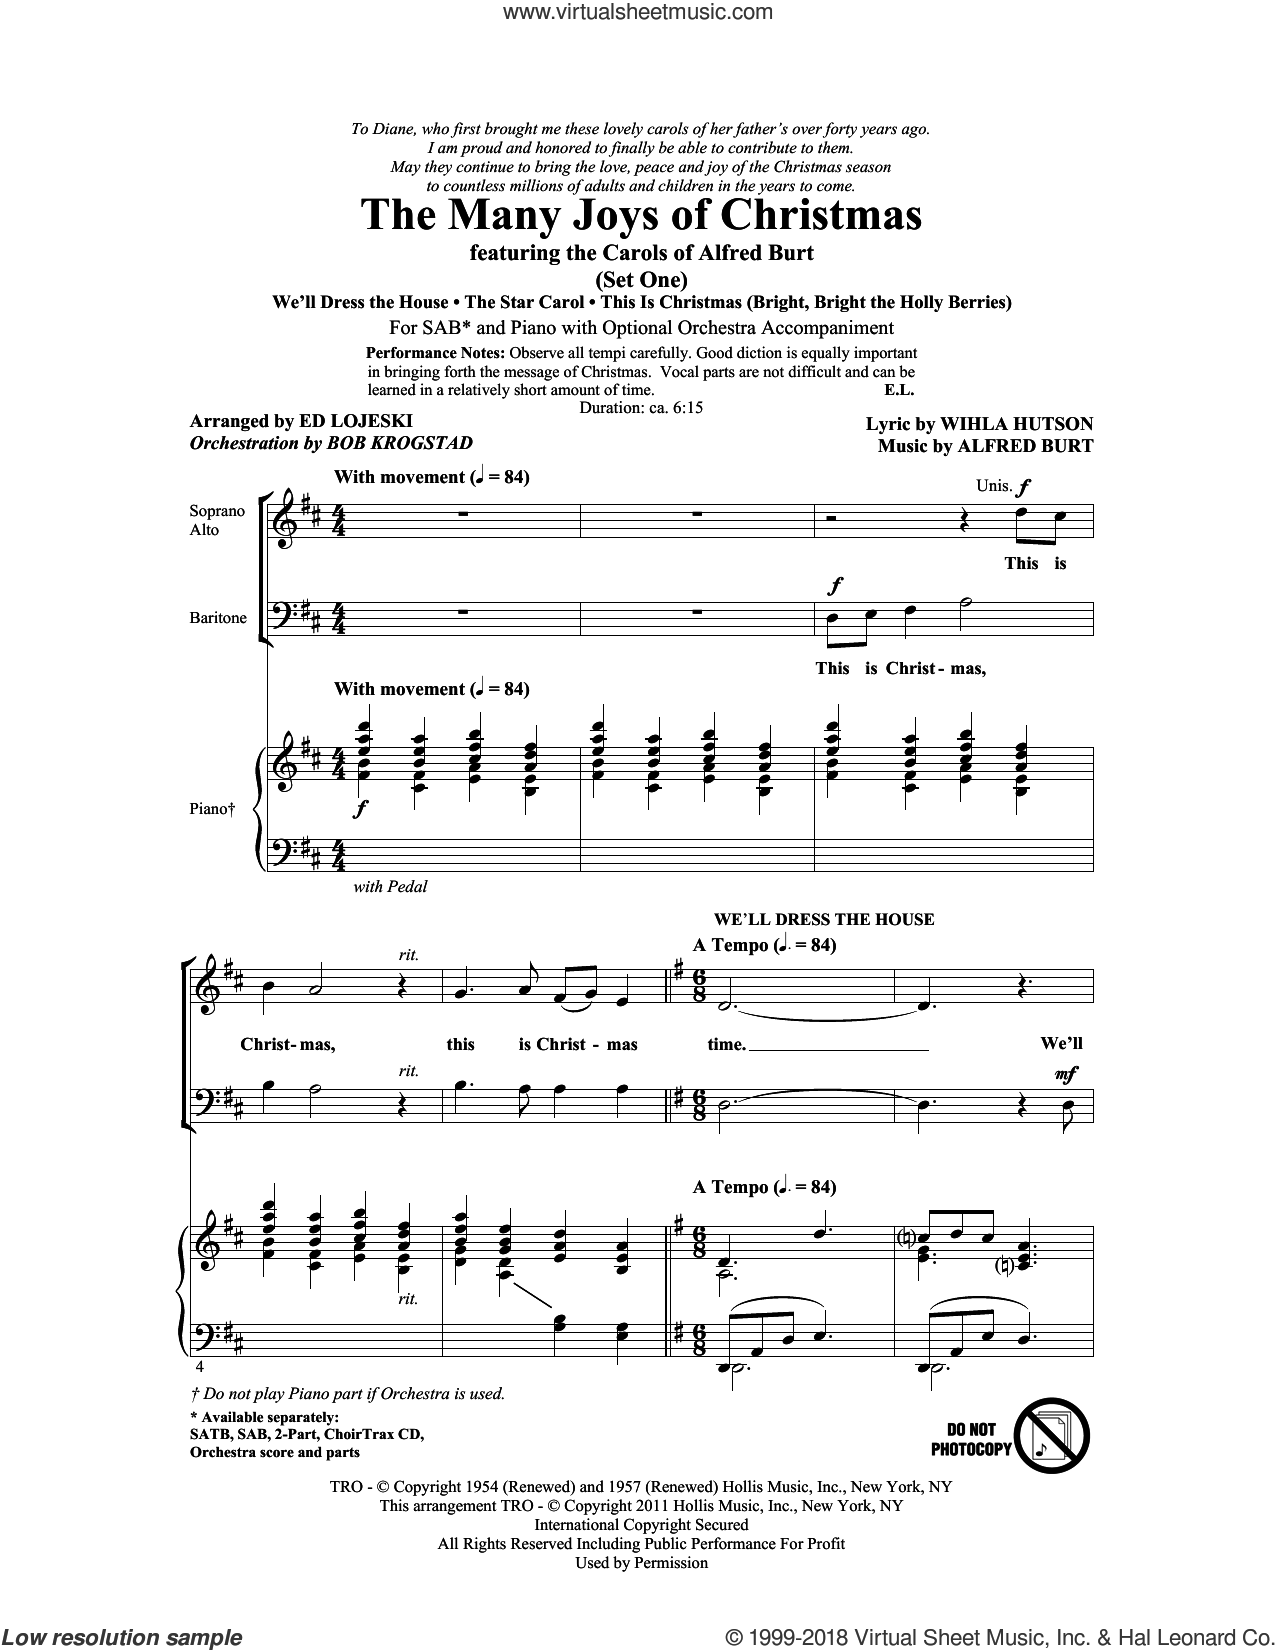 The Many Joys Of Christmas (featuring The Carols of Alfred Burt) Set 1 sheet music for choir (SAB) by Ed Lojeski, Alfred Burt, Bob Krogstad and Wihla Hutson, Christmas carol score, intermediate choir (SAB). Score Image Preview.